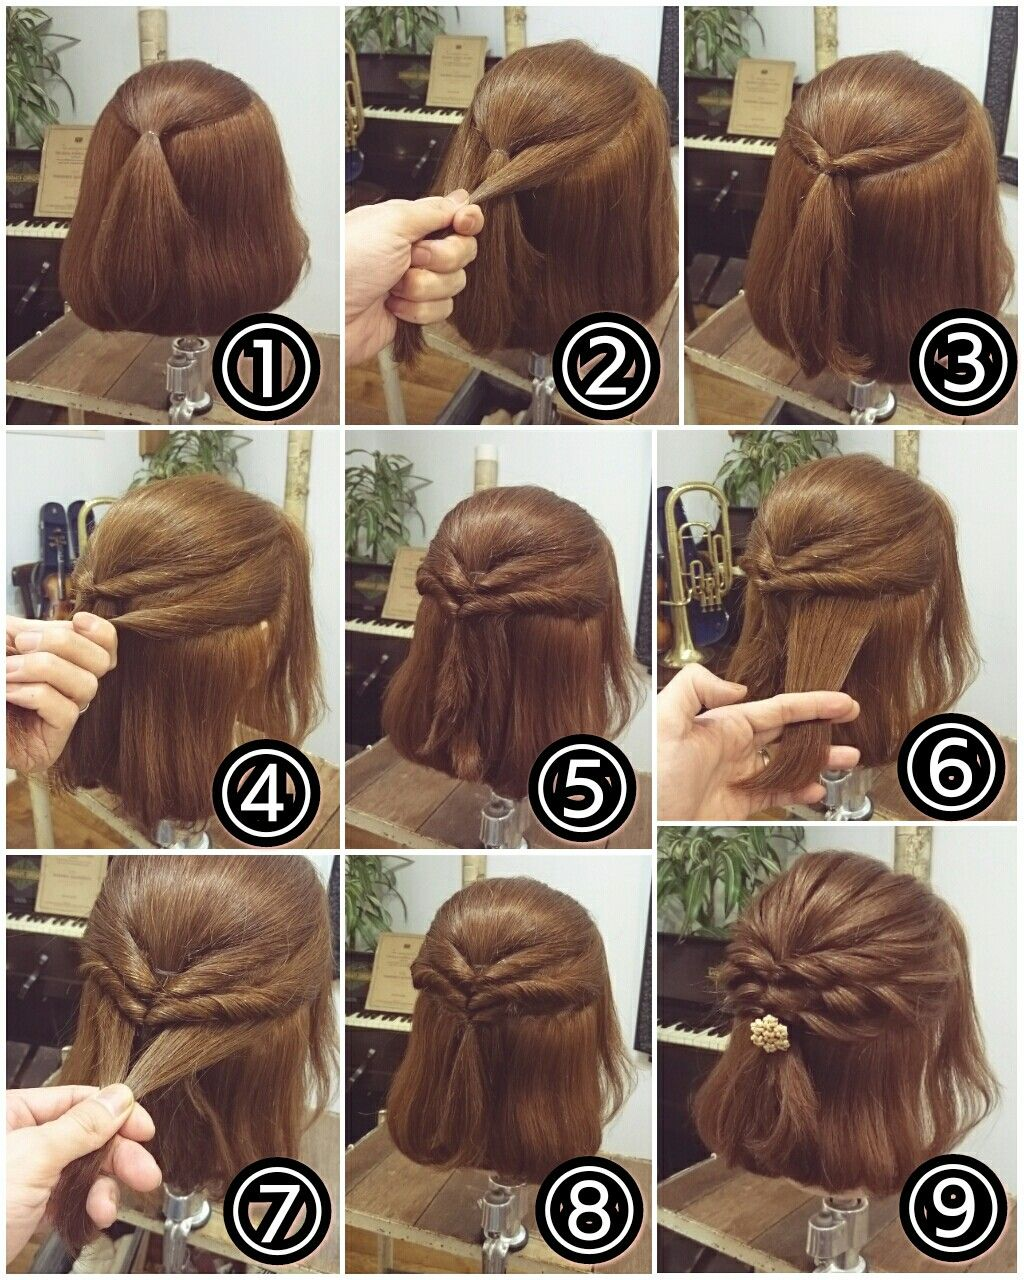 To do Hair